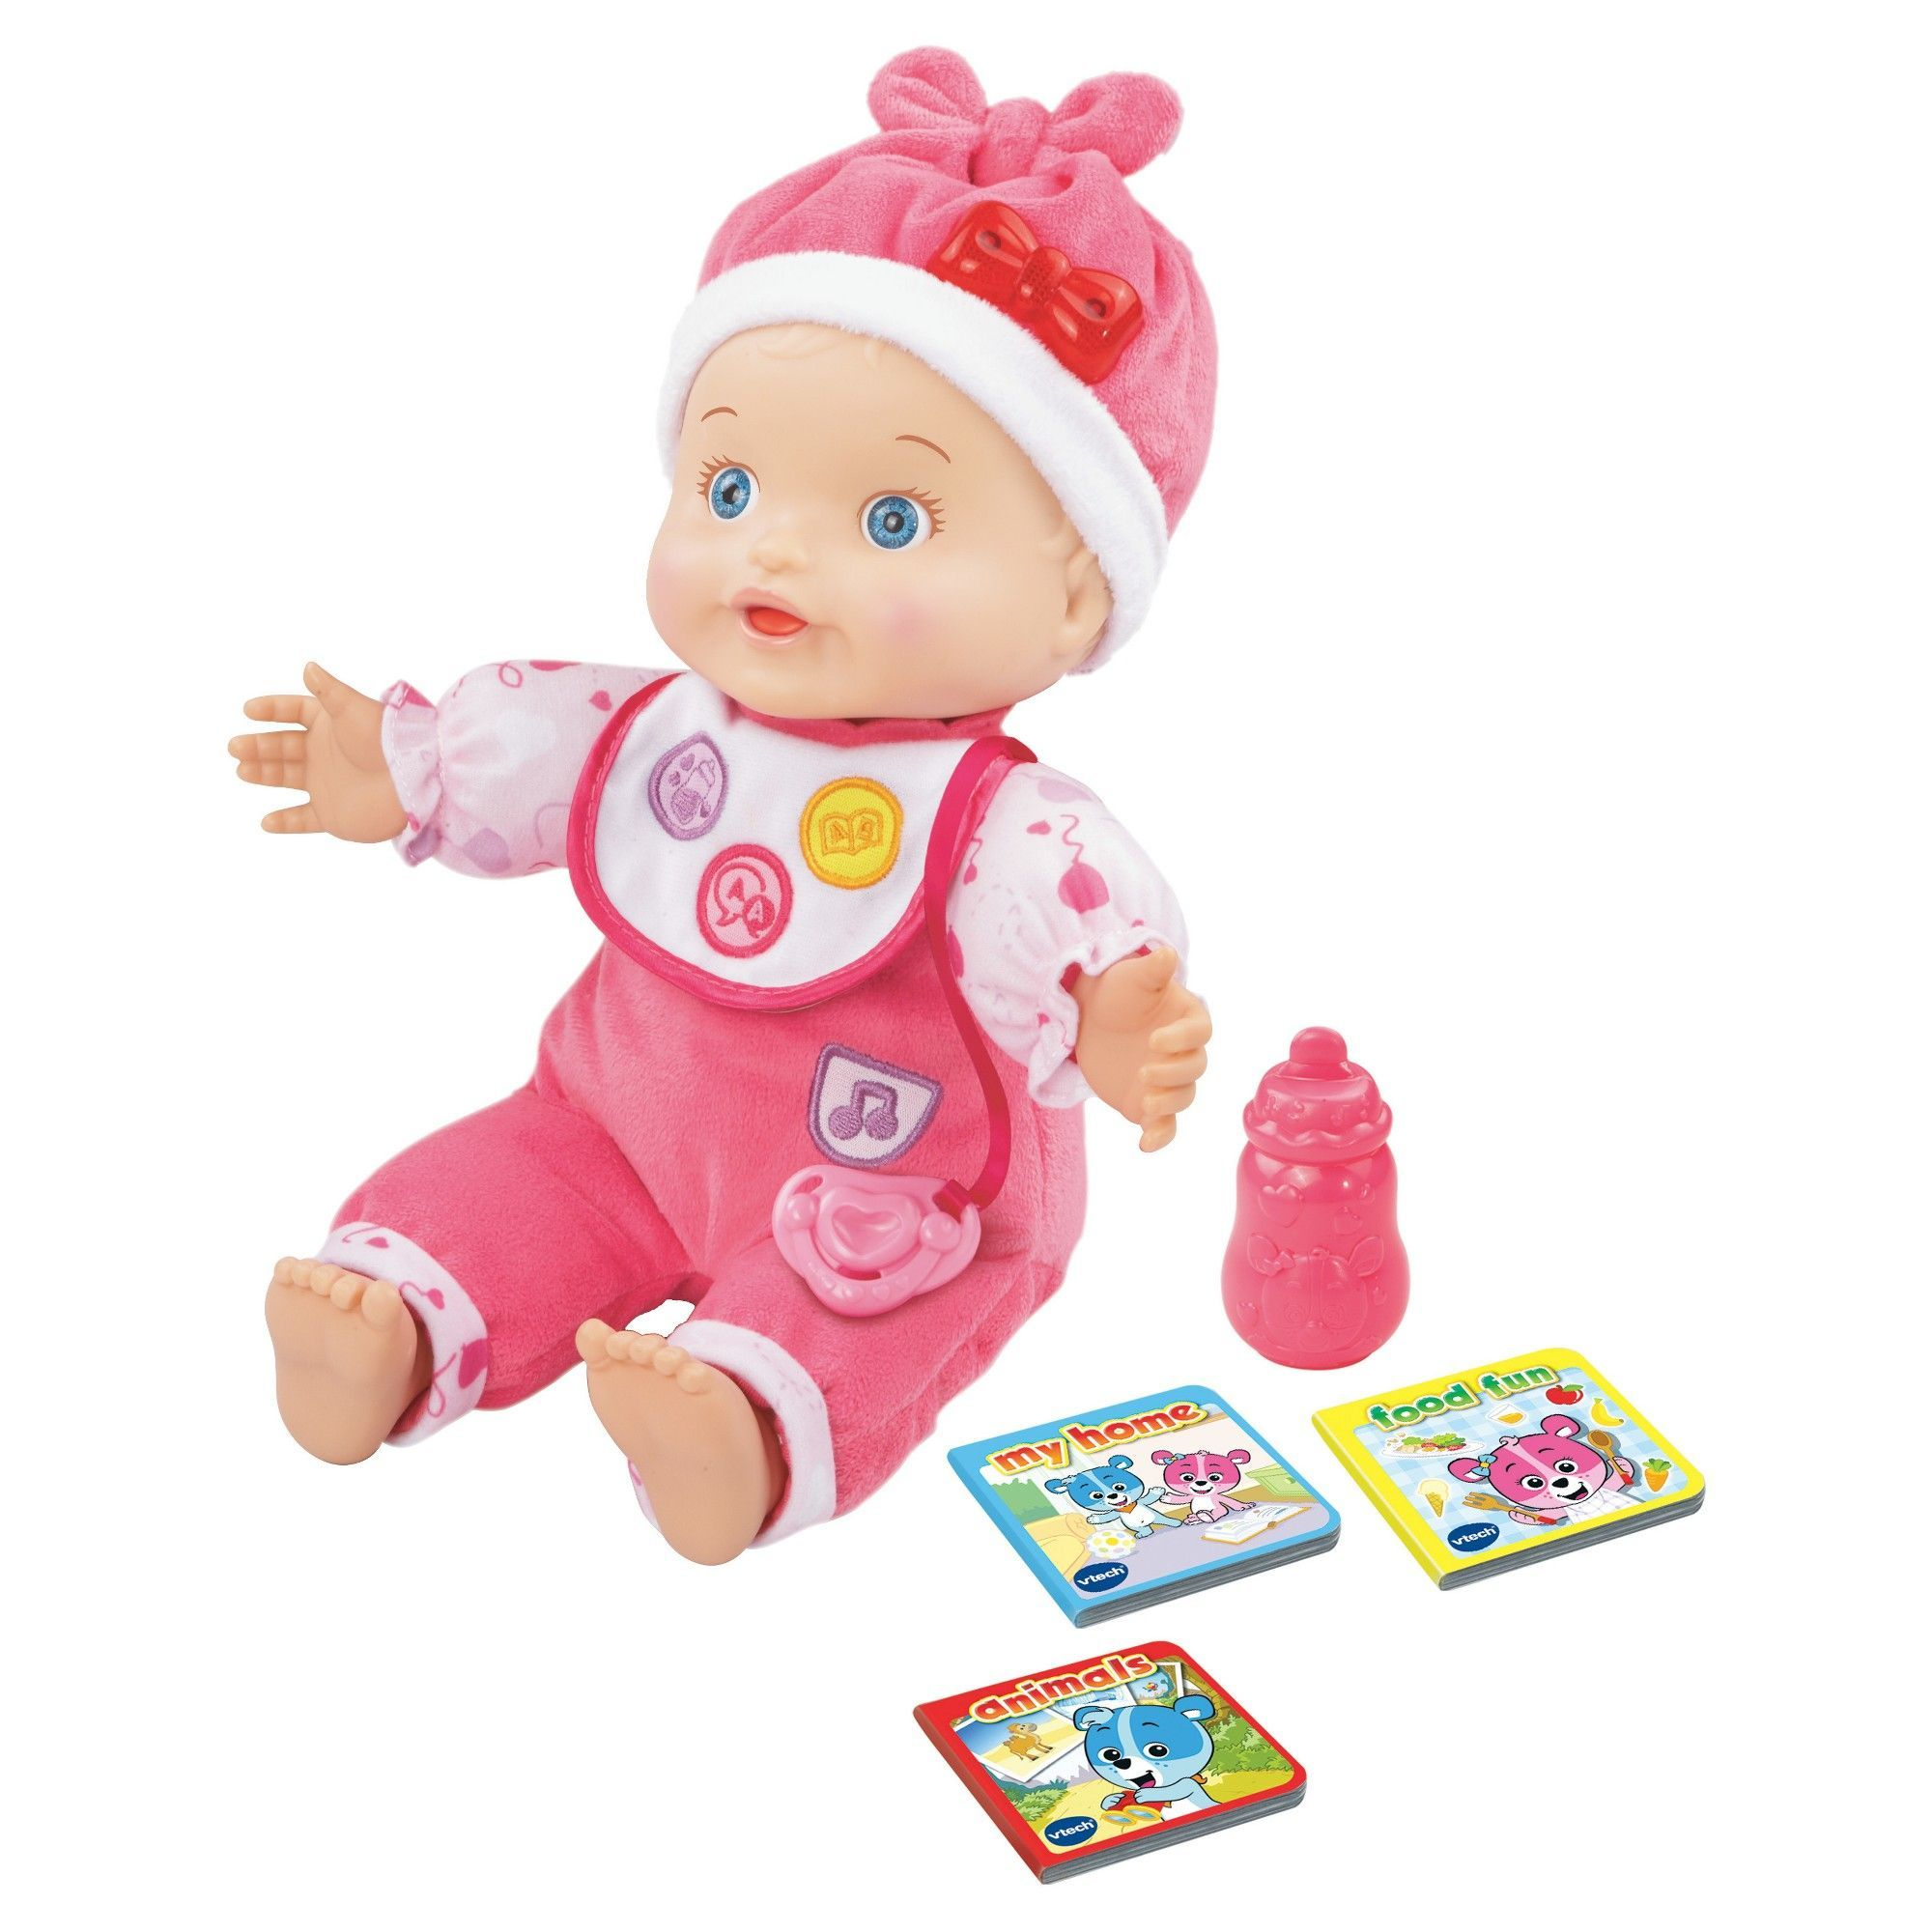 Vtech Baby Amaze Learn to Talk & Read Baby Doll | Vtech ...